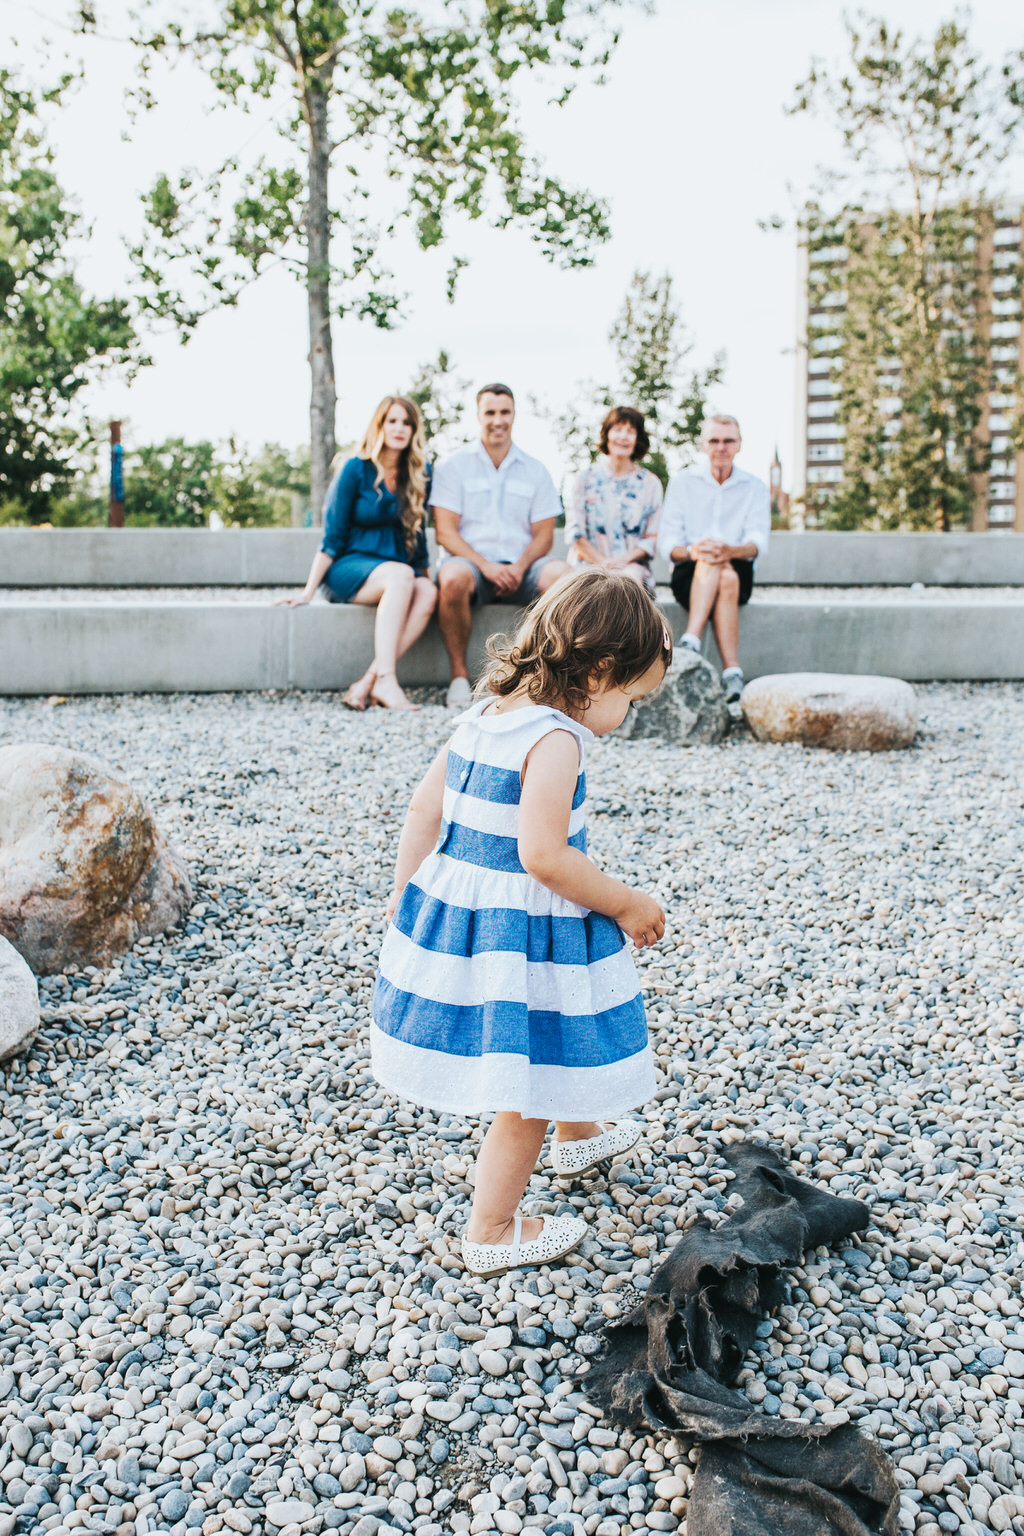 East Village Calgary Family Photography Session